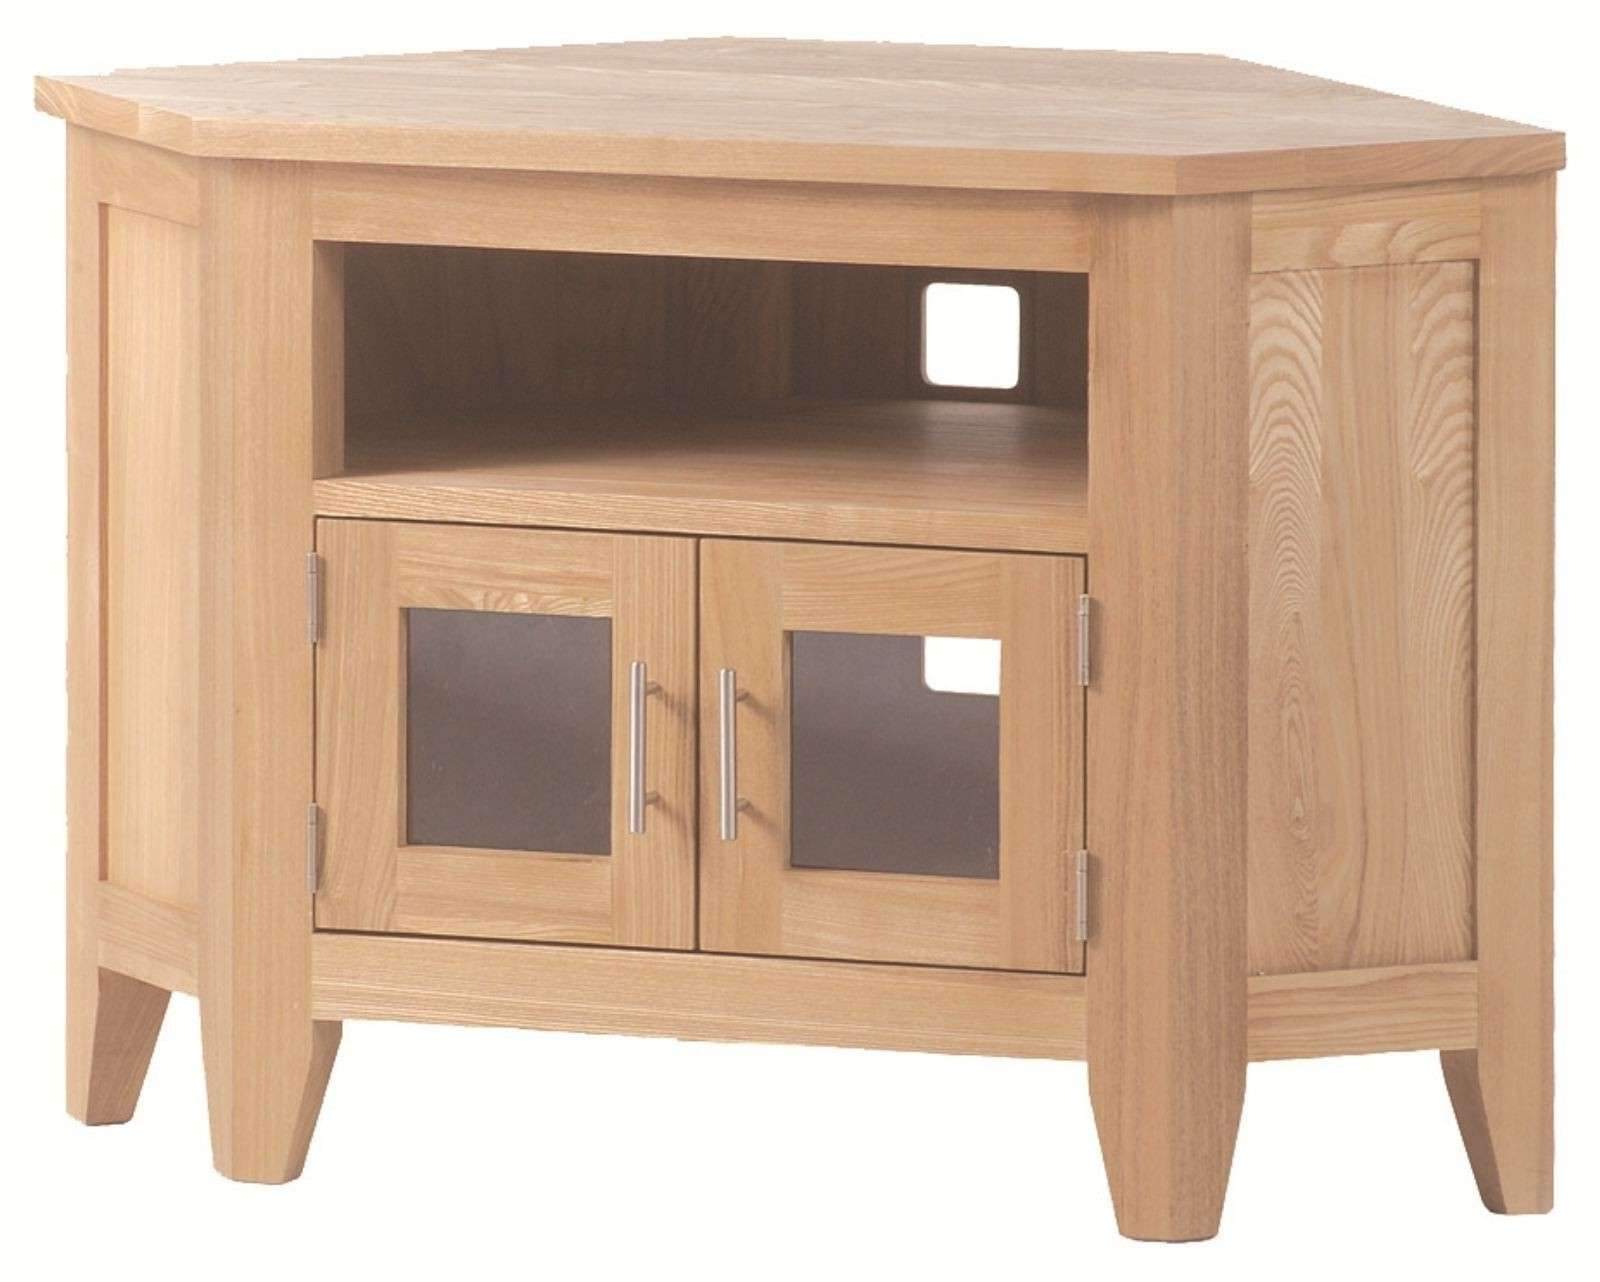 Corner Tv Cabinets With Doors • Corner Cabinets For Silver Corner Tv Stands (View 15 of 15)